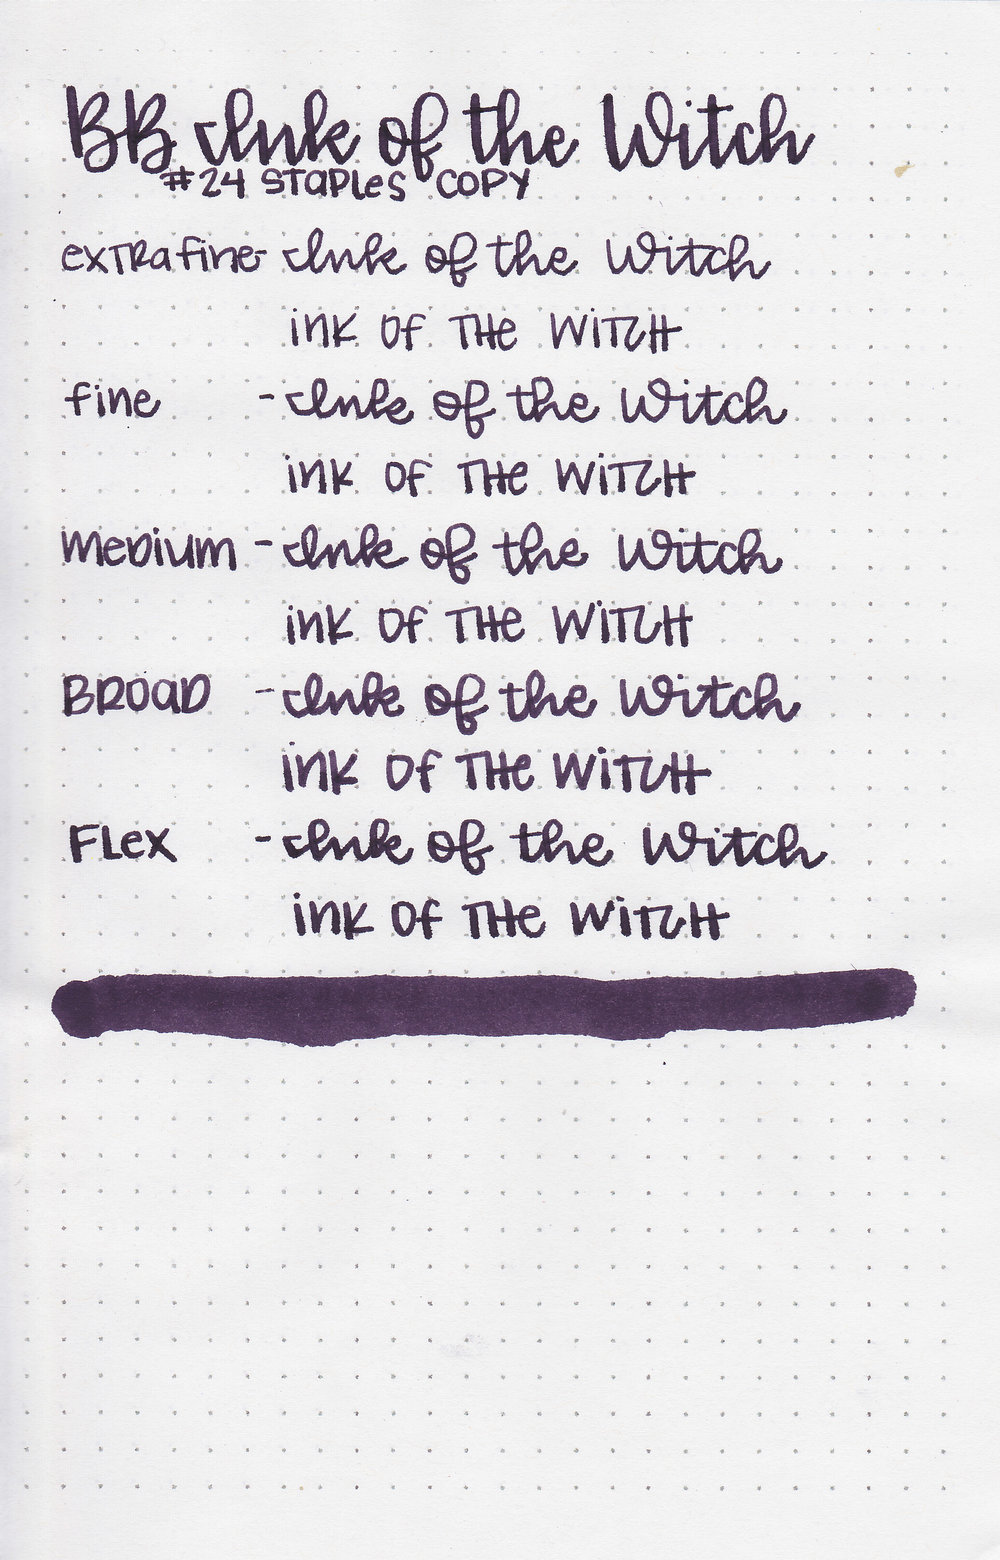 bb-ink-of-the-witch-5.jpg